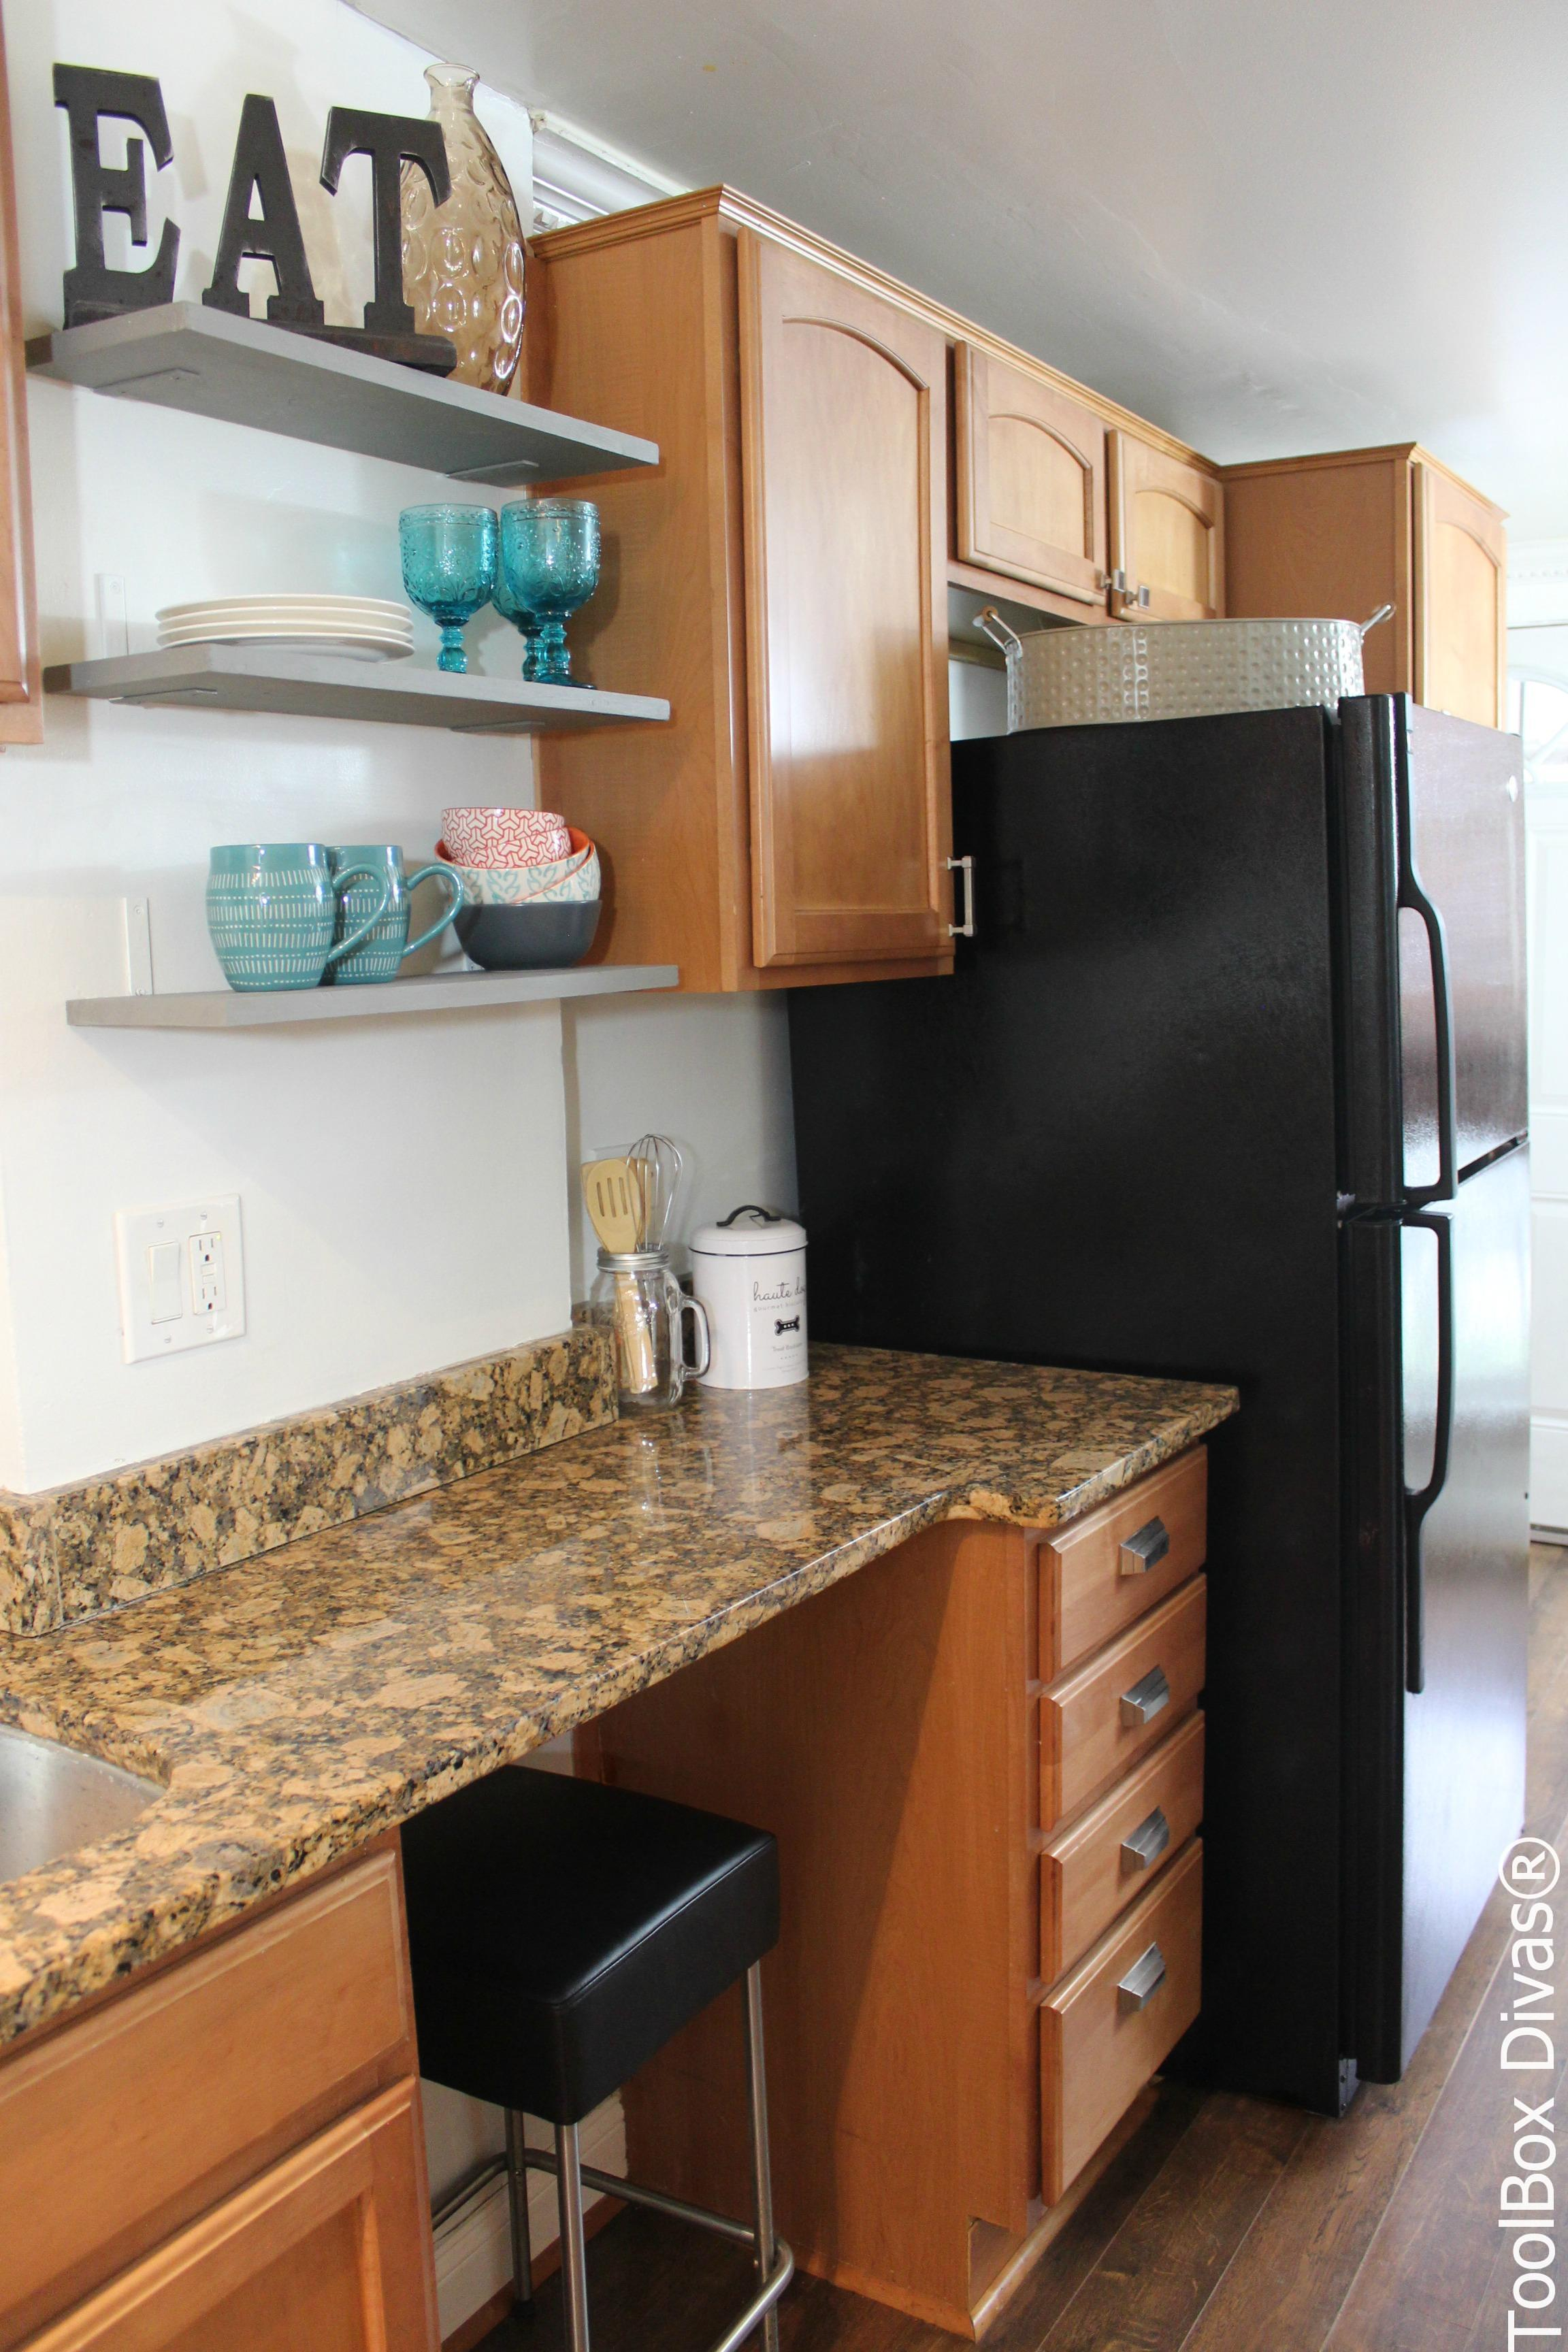 #Kitchenupdate #DIY #LibertyHardware #Homedepot @Homedepot @Toolboxdivas #Kitchen #Hardware #Kitchencabinets #Ad